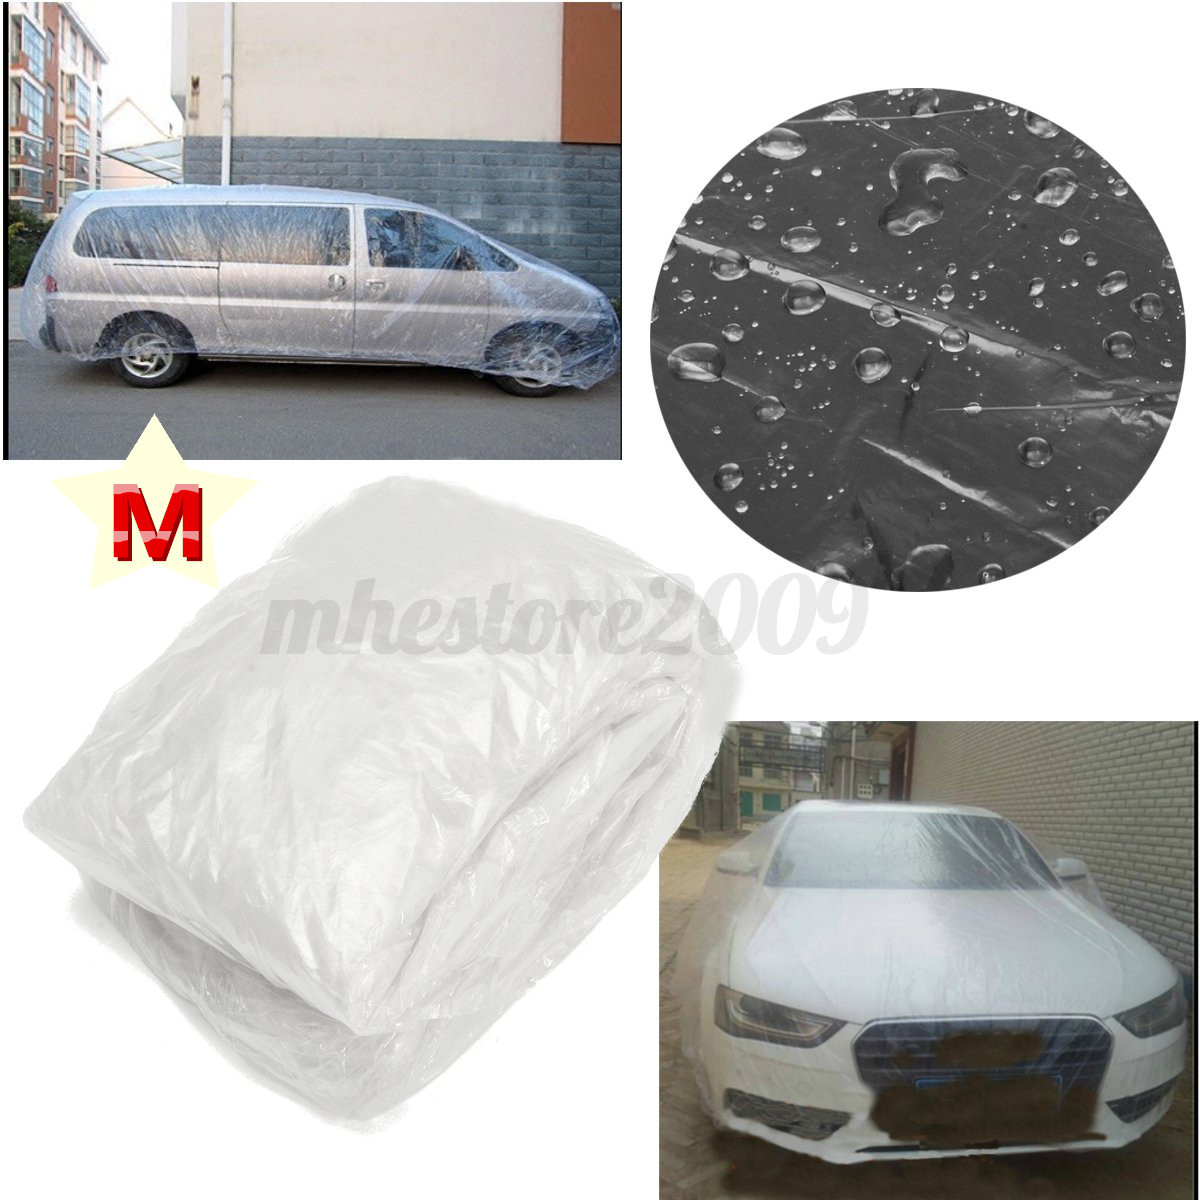 How To Make Money To Travel Temping: Clear Plastic Temporary Disposable Universal SUV Car Cover